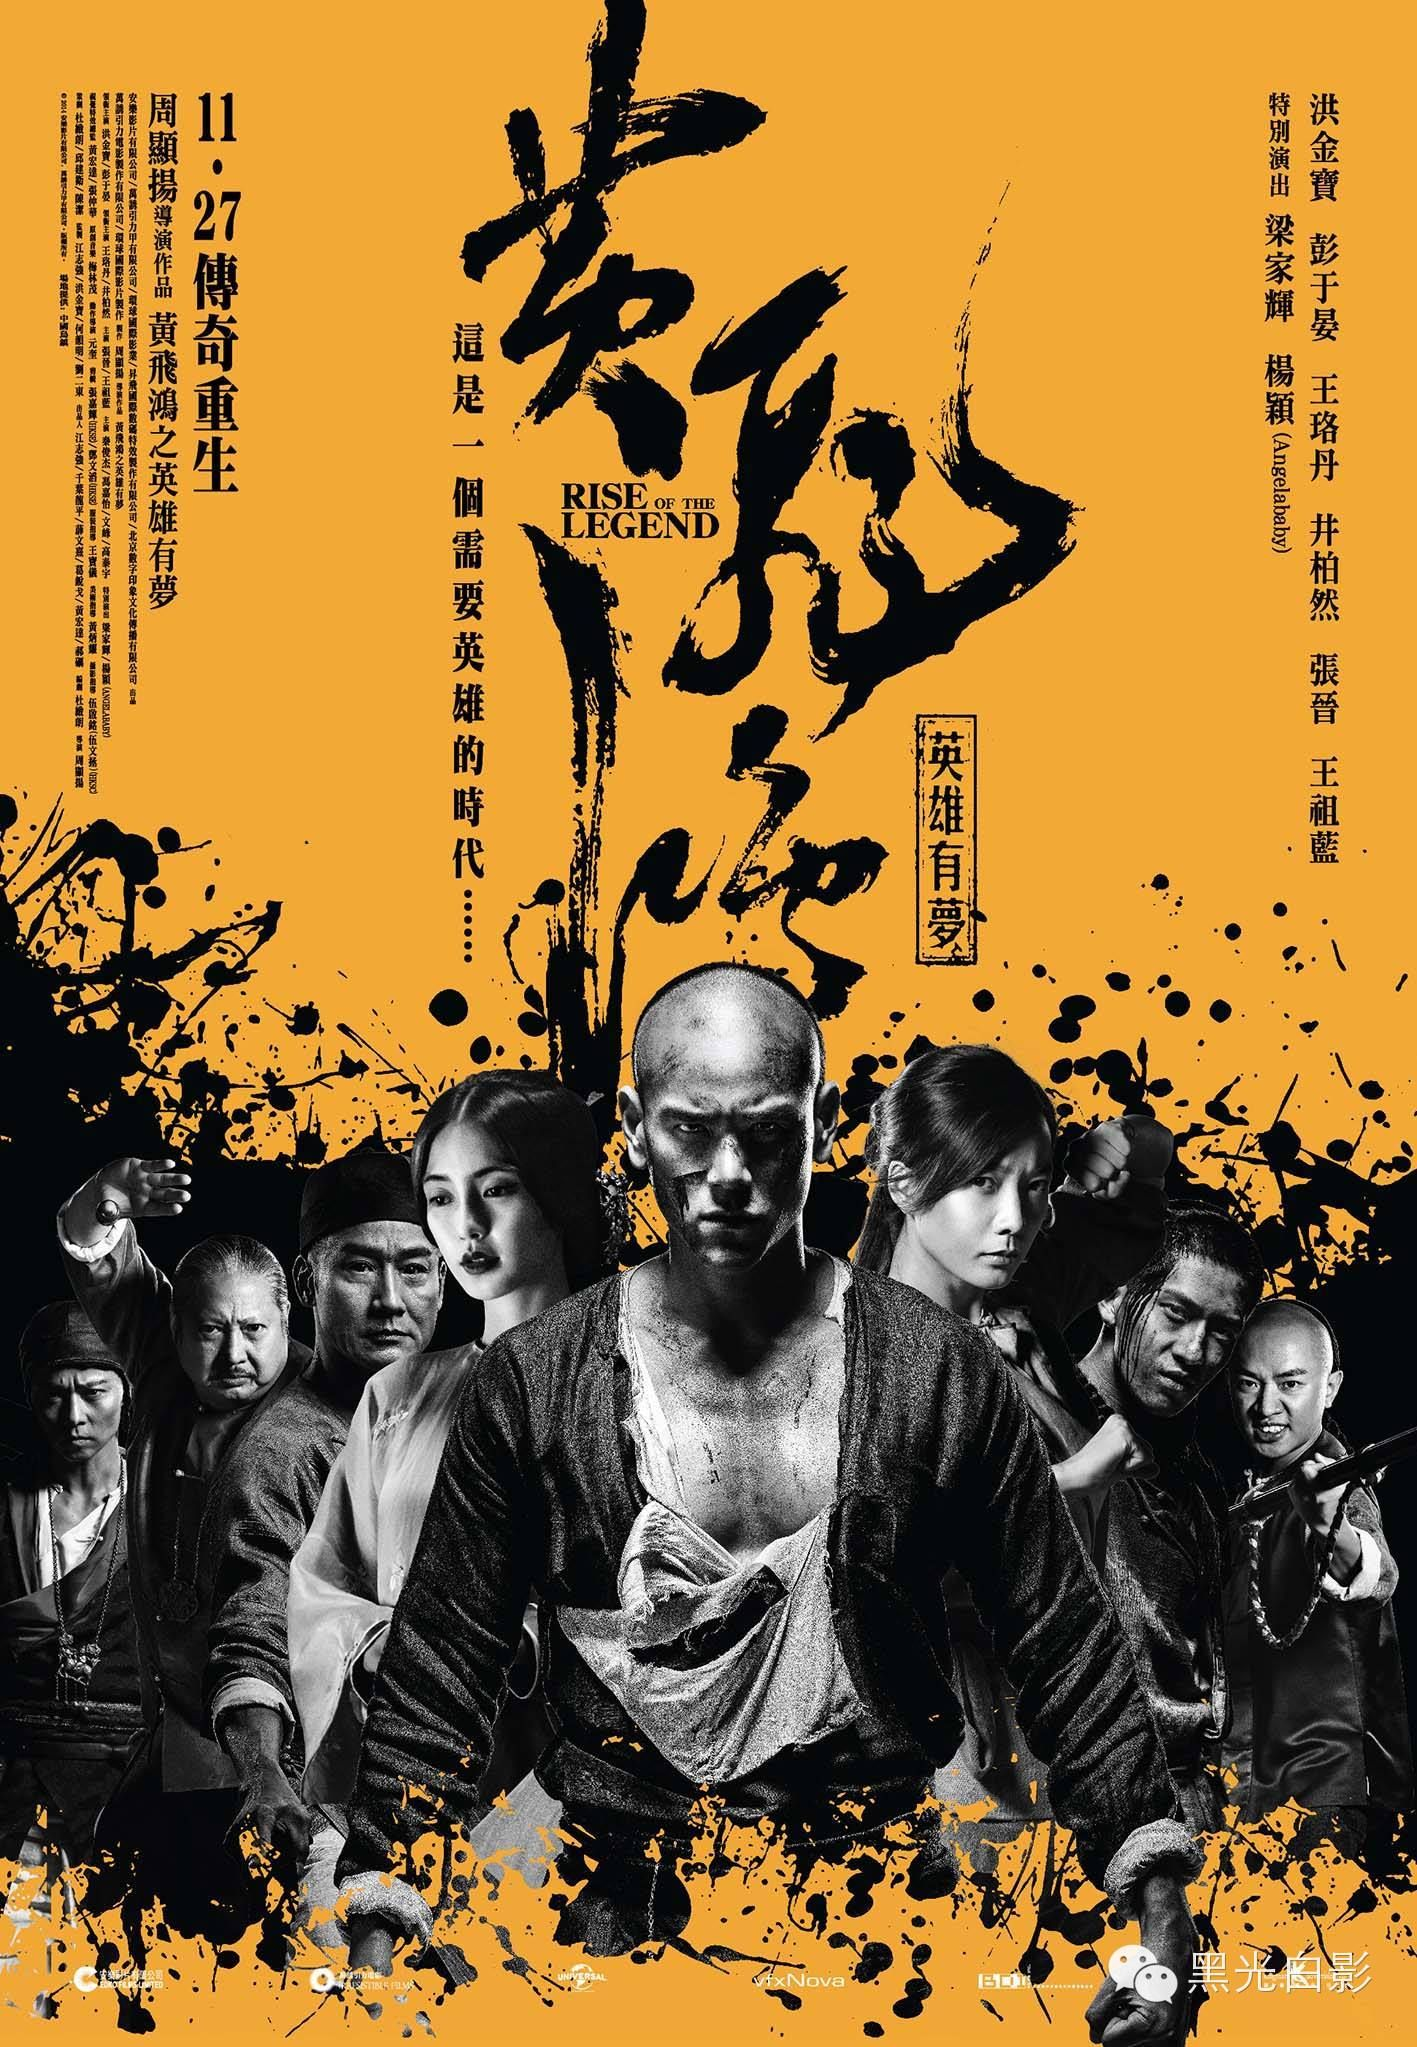 Rise of the Legend 黃飛鴻之英雄有夢 (2014) (With images) Legend